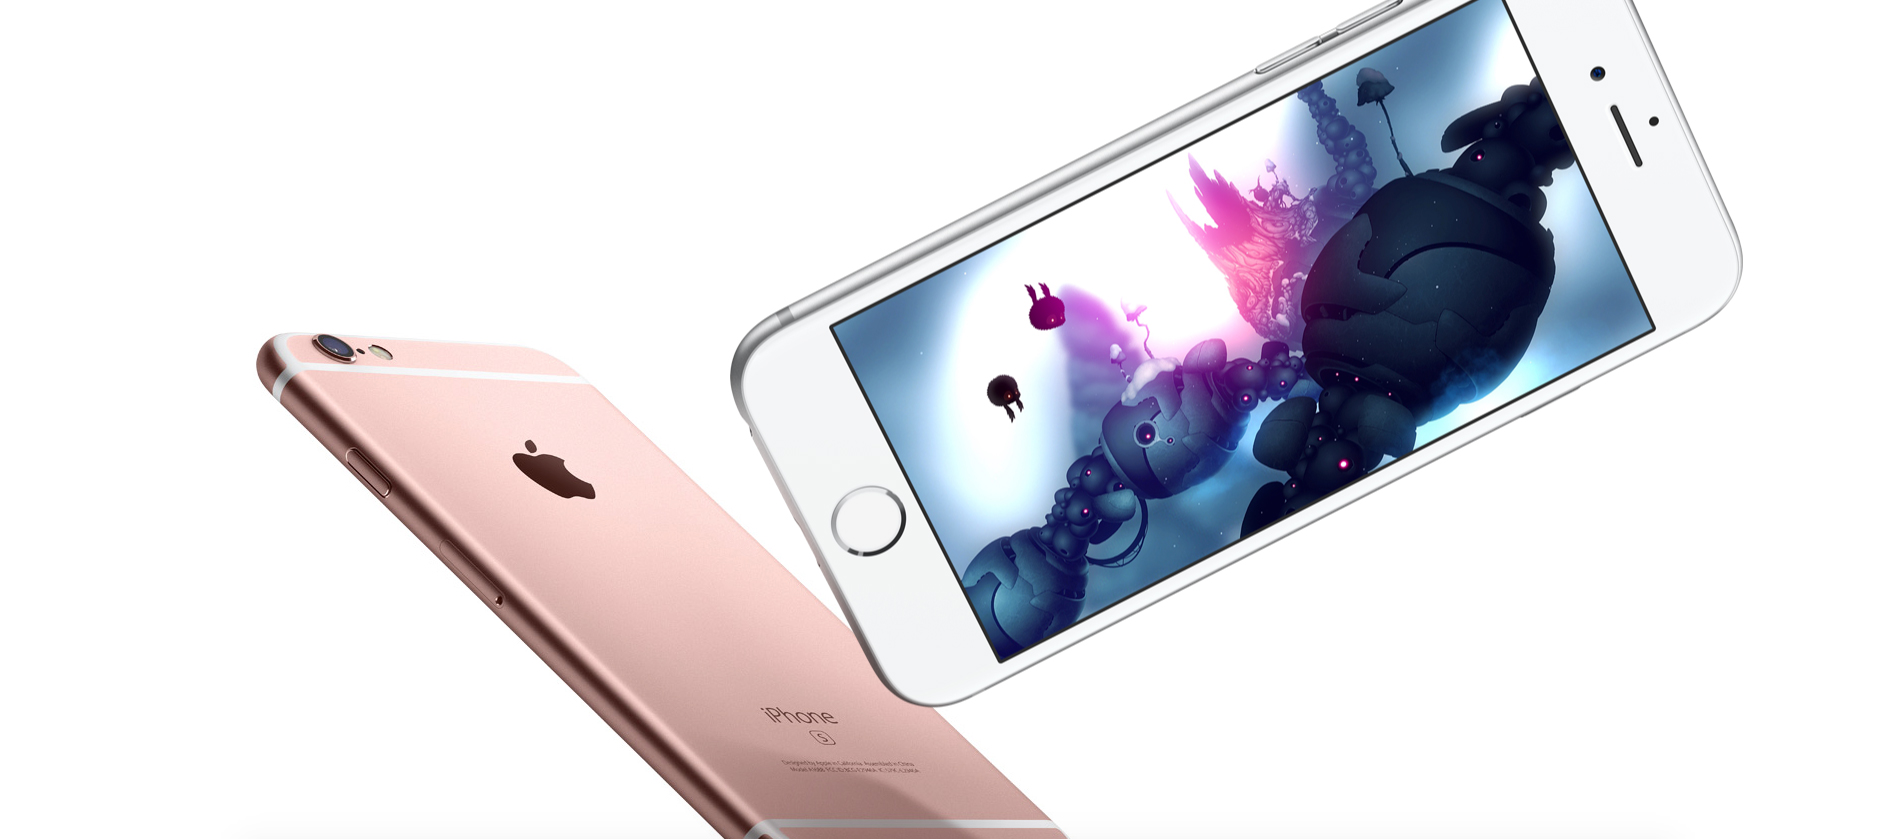 Apple's annoying popup ads prompt iPhone 6s upgrades